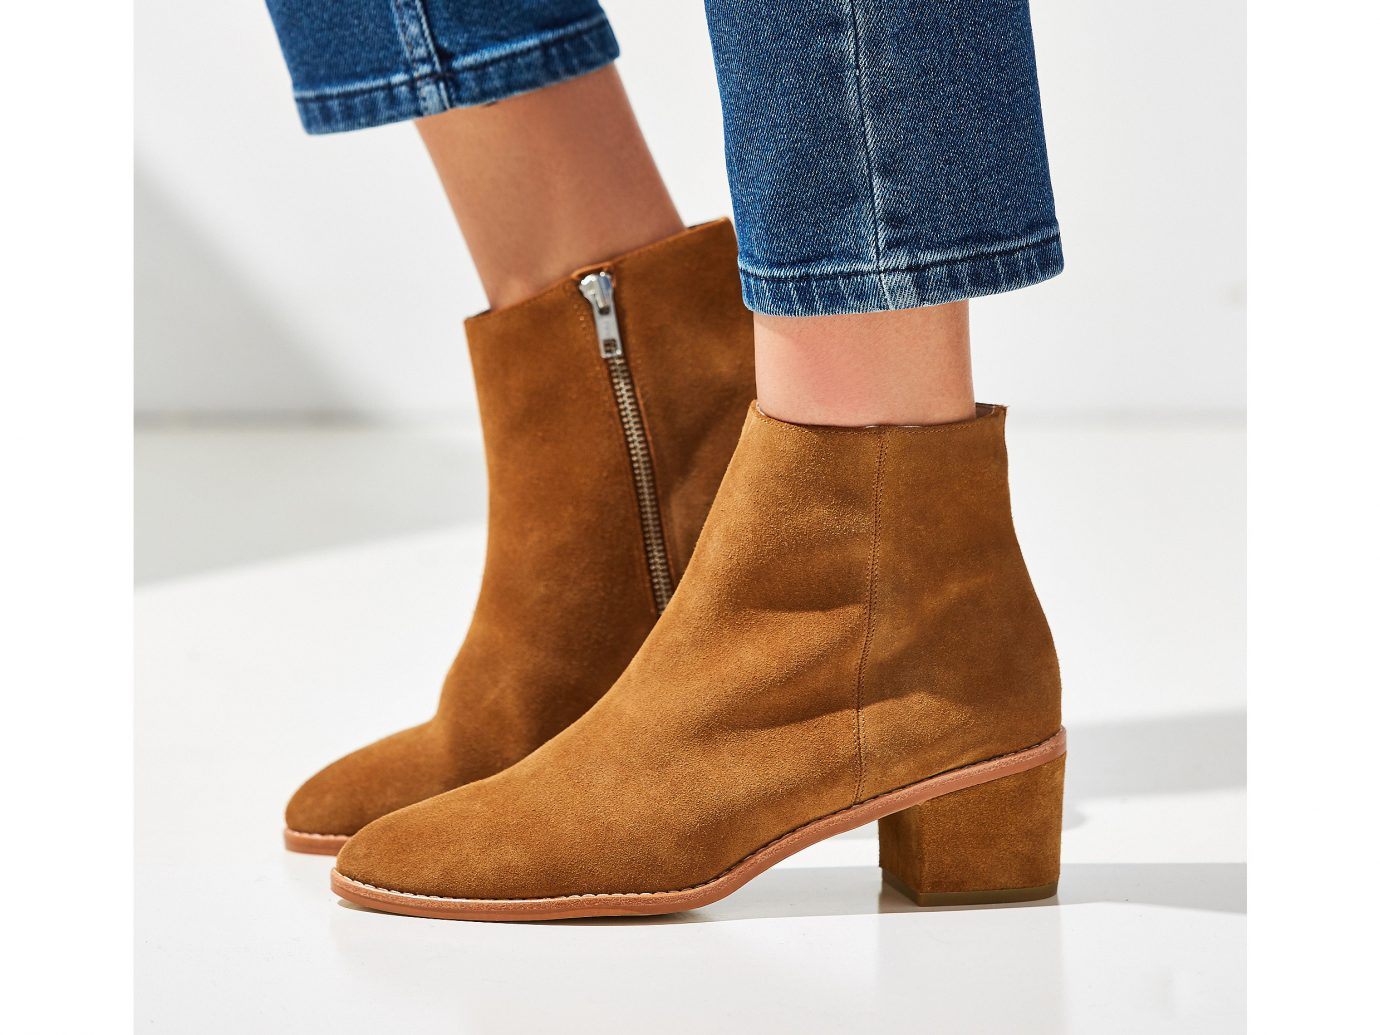 Style + Design person clothing footwear leather brown boot shoe leg textile suede outdoor shoe human body material shoes feet